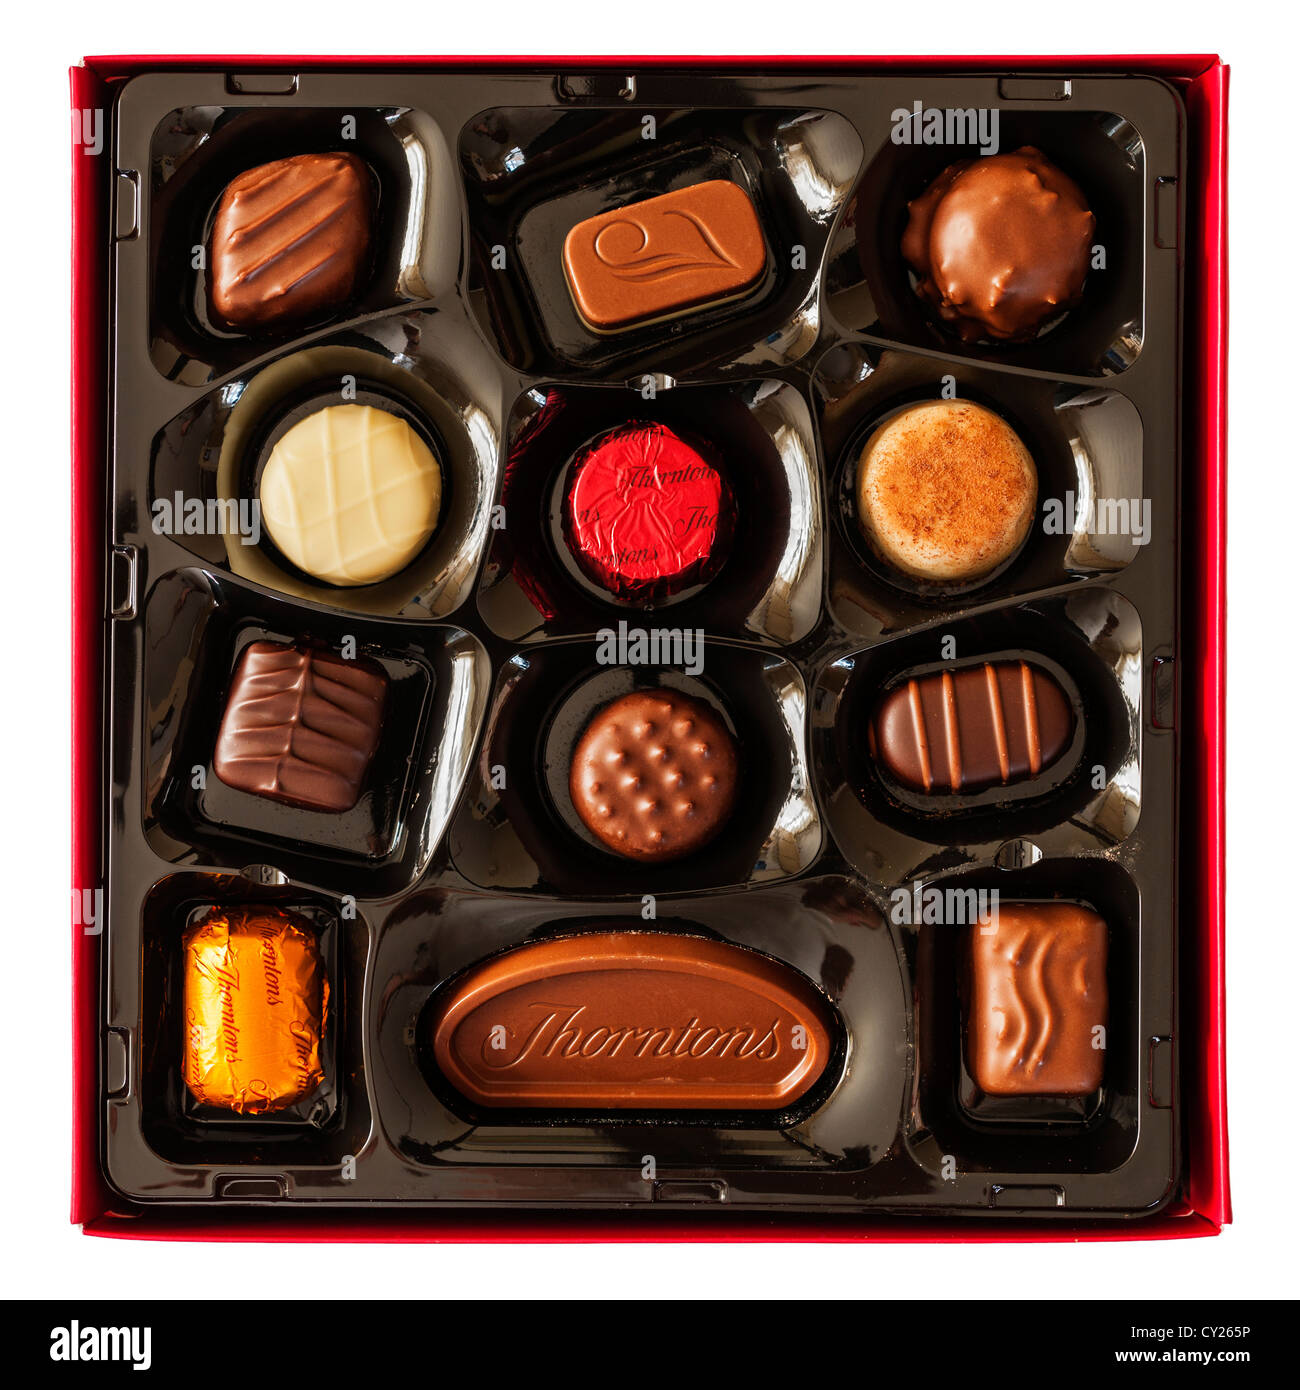 A box of Thorntons classic collection chocolates on a white background - Stock Image